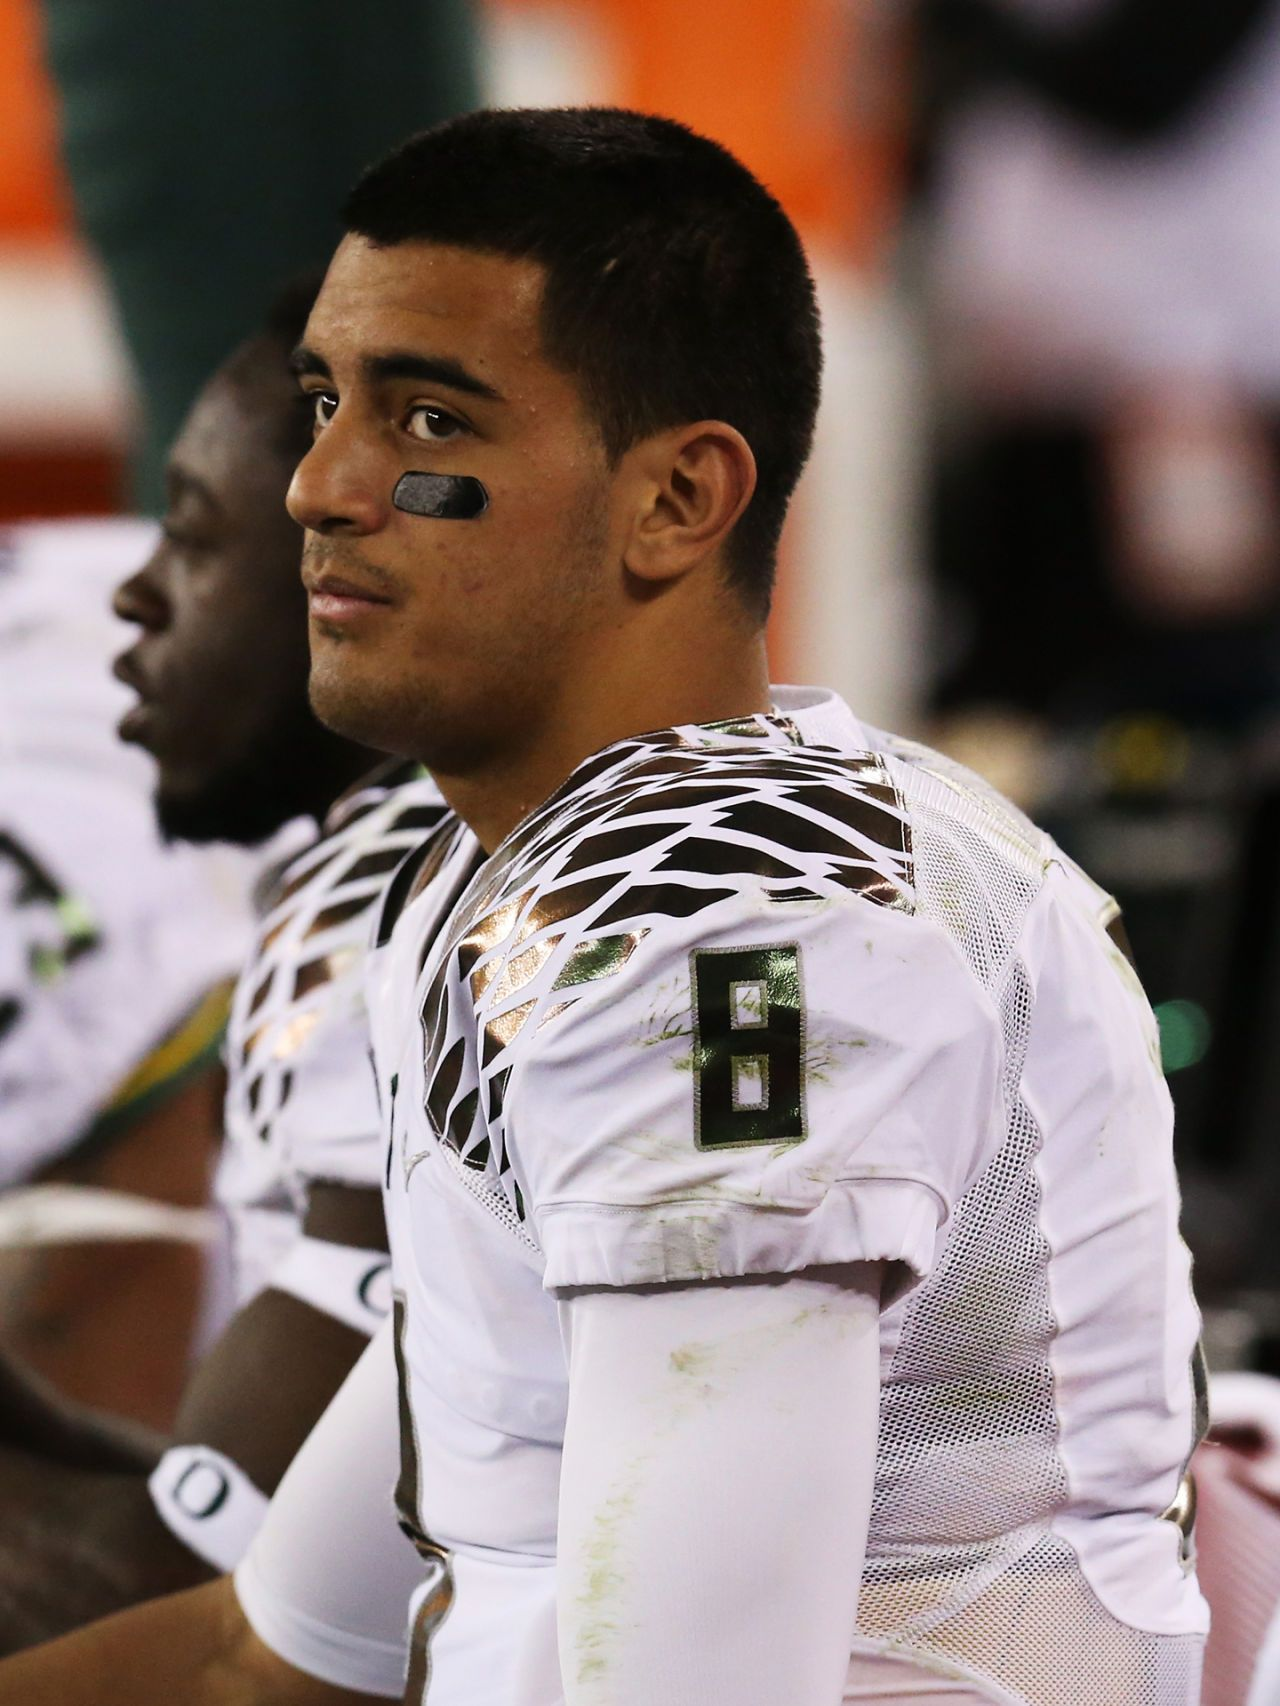 Hottest College Football Players 2013 Hot Football Players